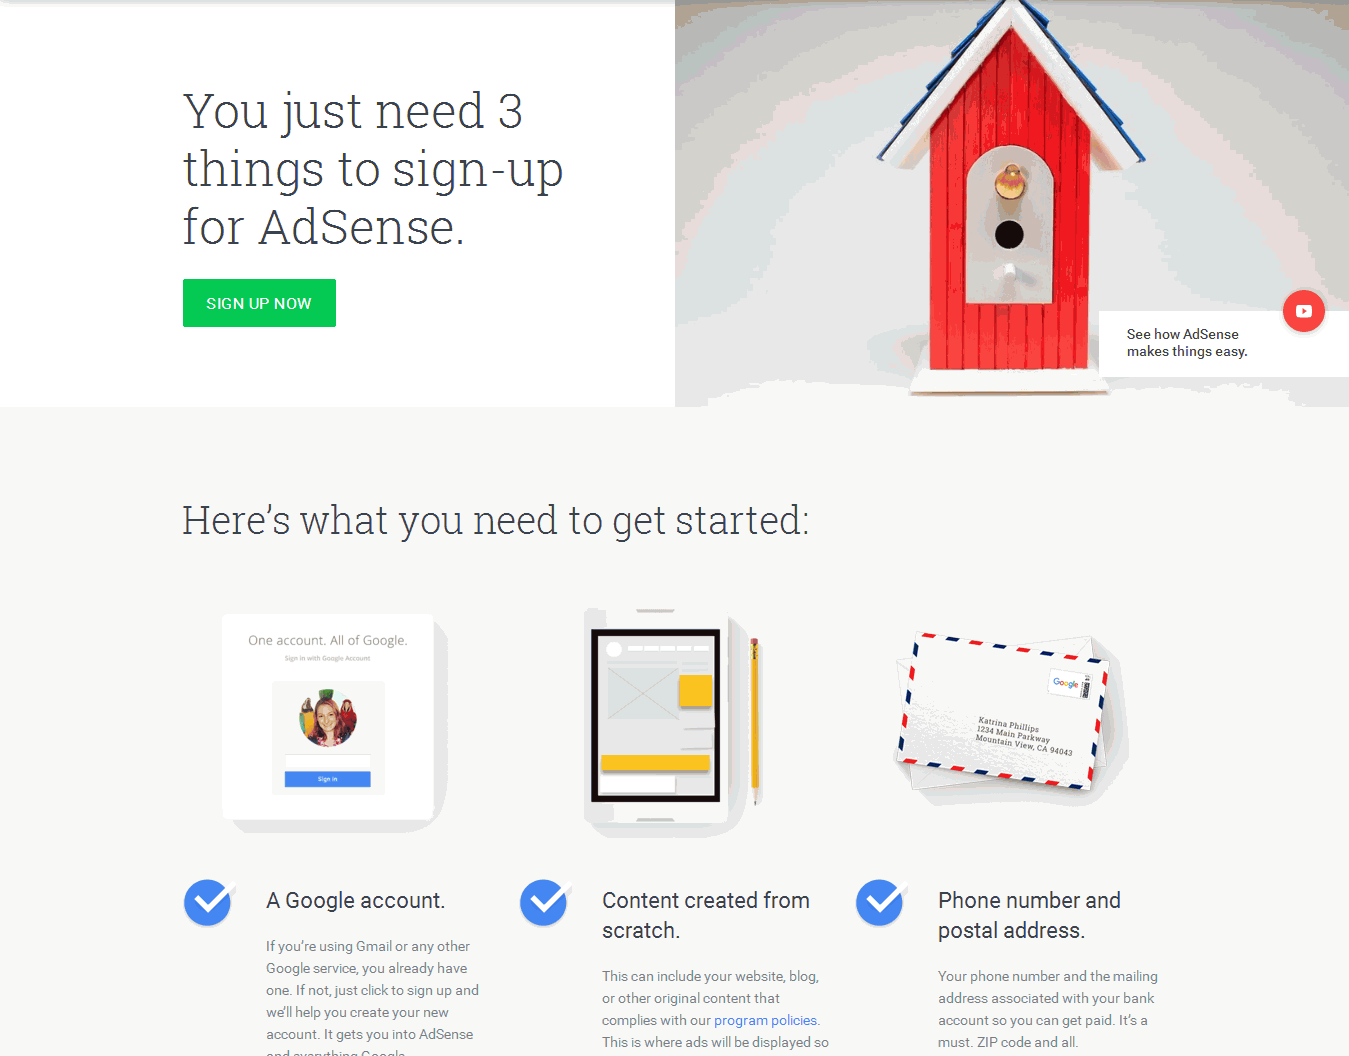 Adsense Case Study: Approved Adsense Account (3 Days/12 Posts)